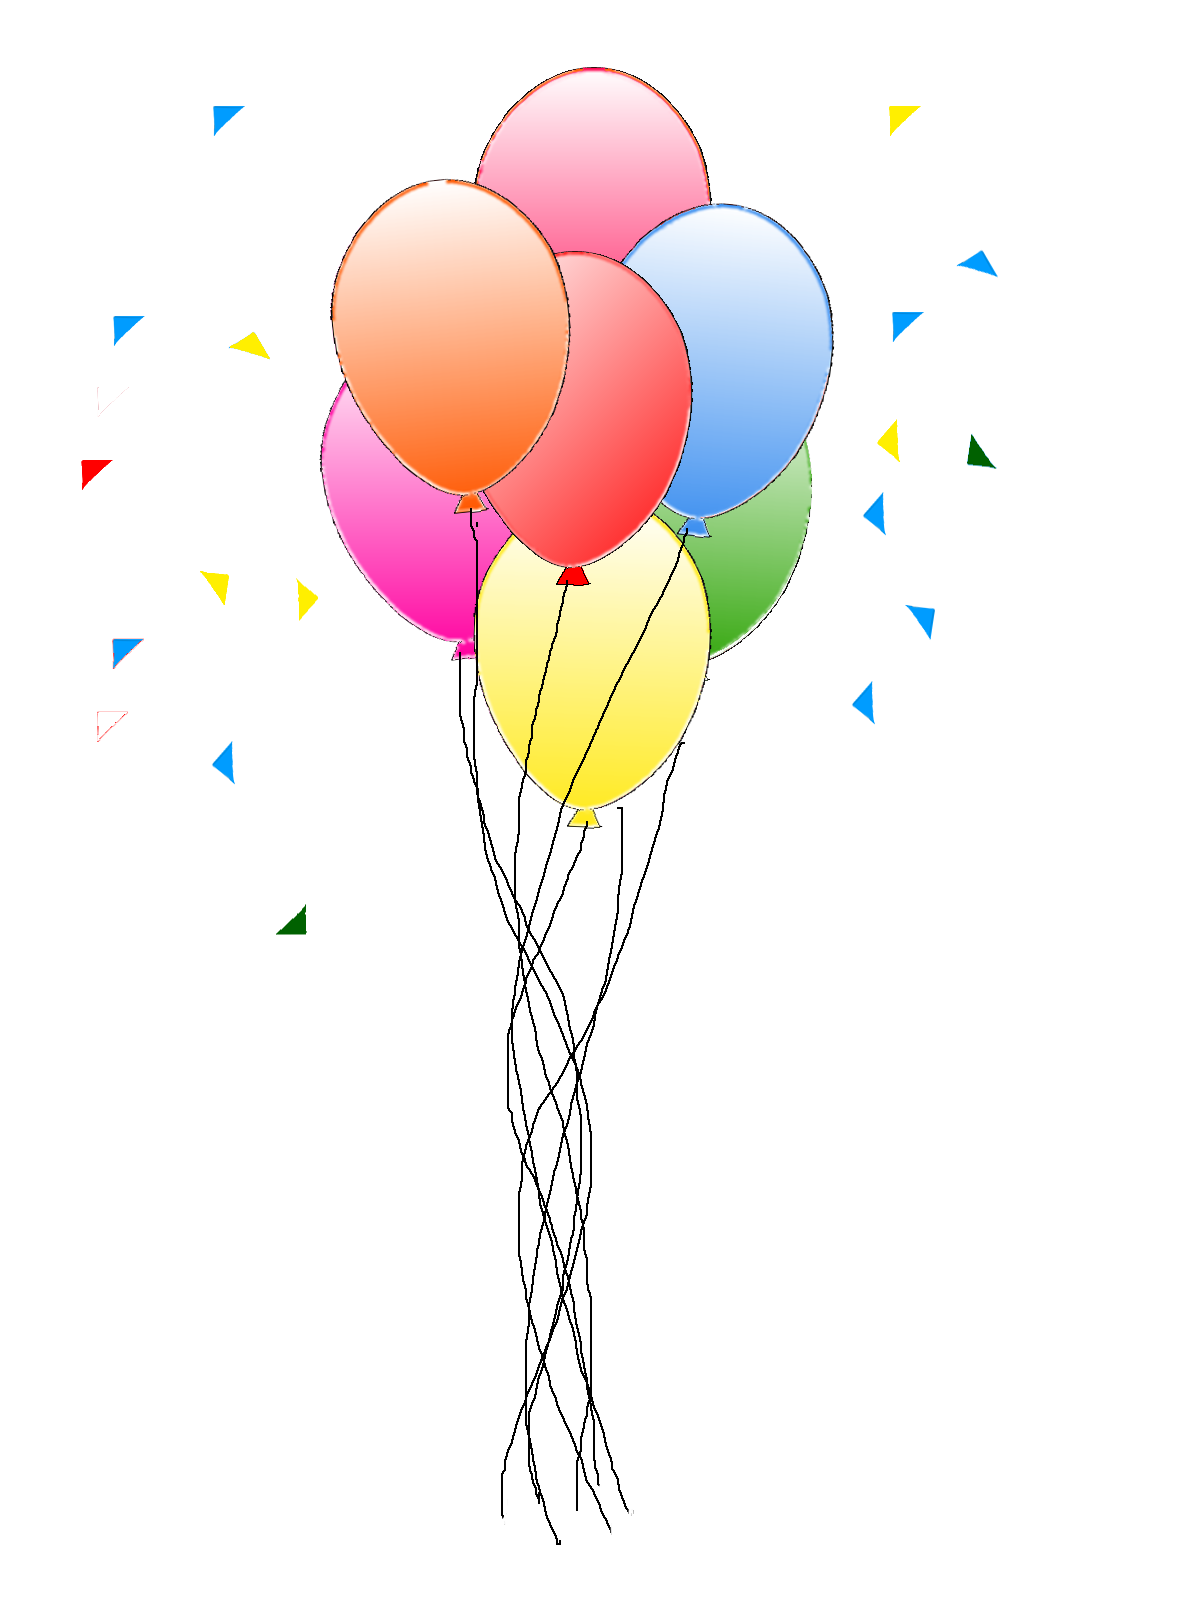 Free Free Balloon Images, Download Free Clip Art, Free Clip Art on.